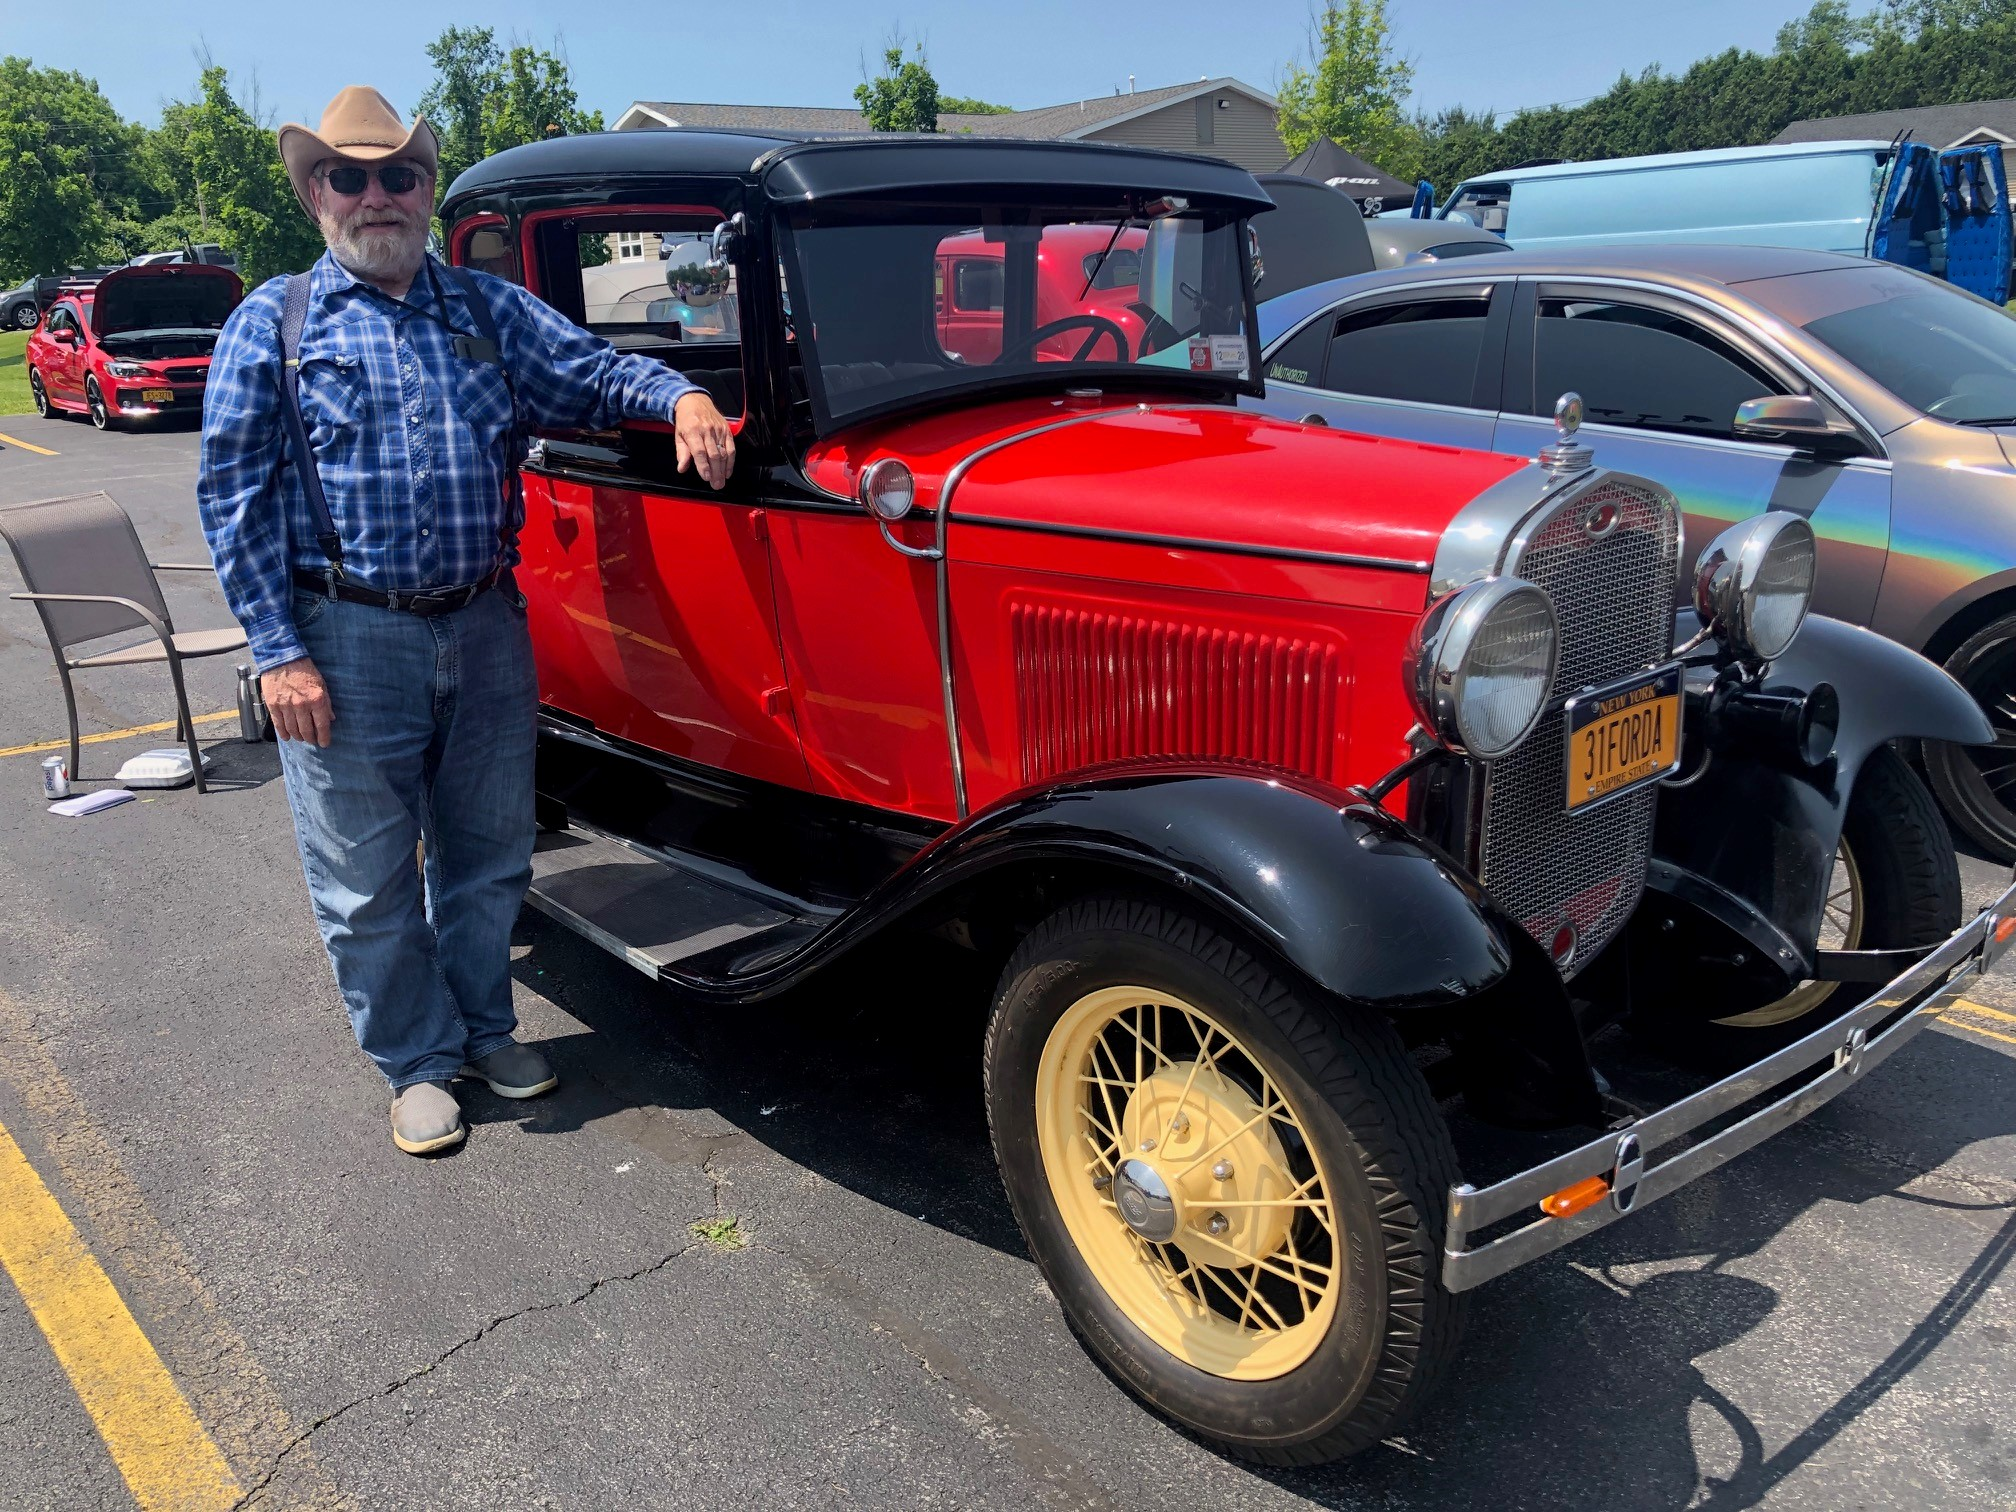 1931 Ford Model A remains popular with collectors